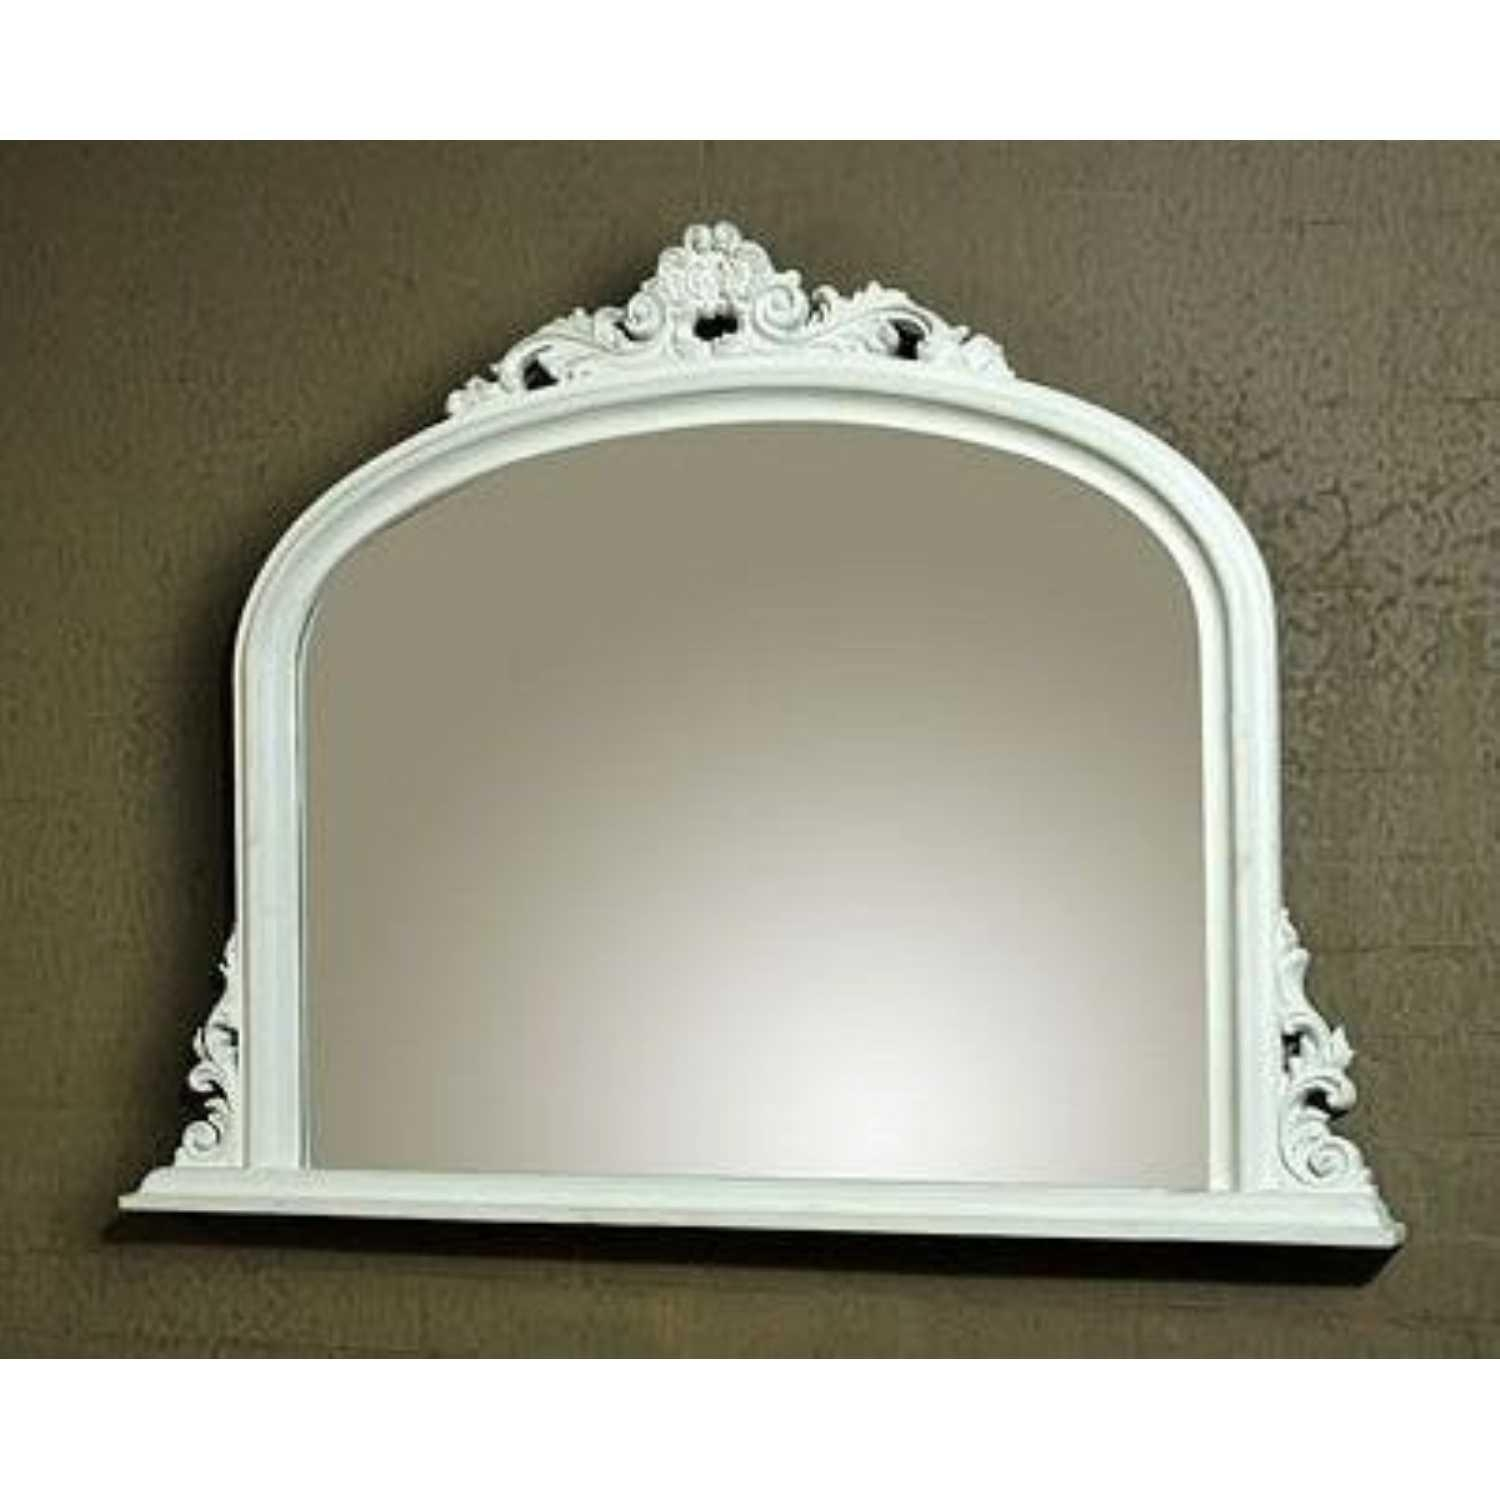 Georgiana White Clay Paint Bevelled Overmantle Mirror Regarding White Overmantle Mirror (Image 7 of 20)